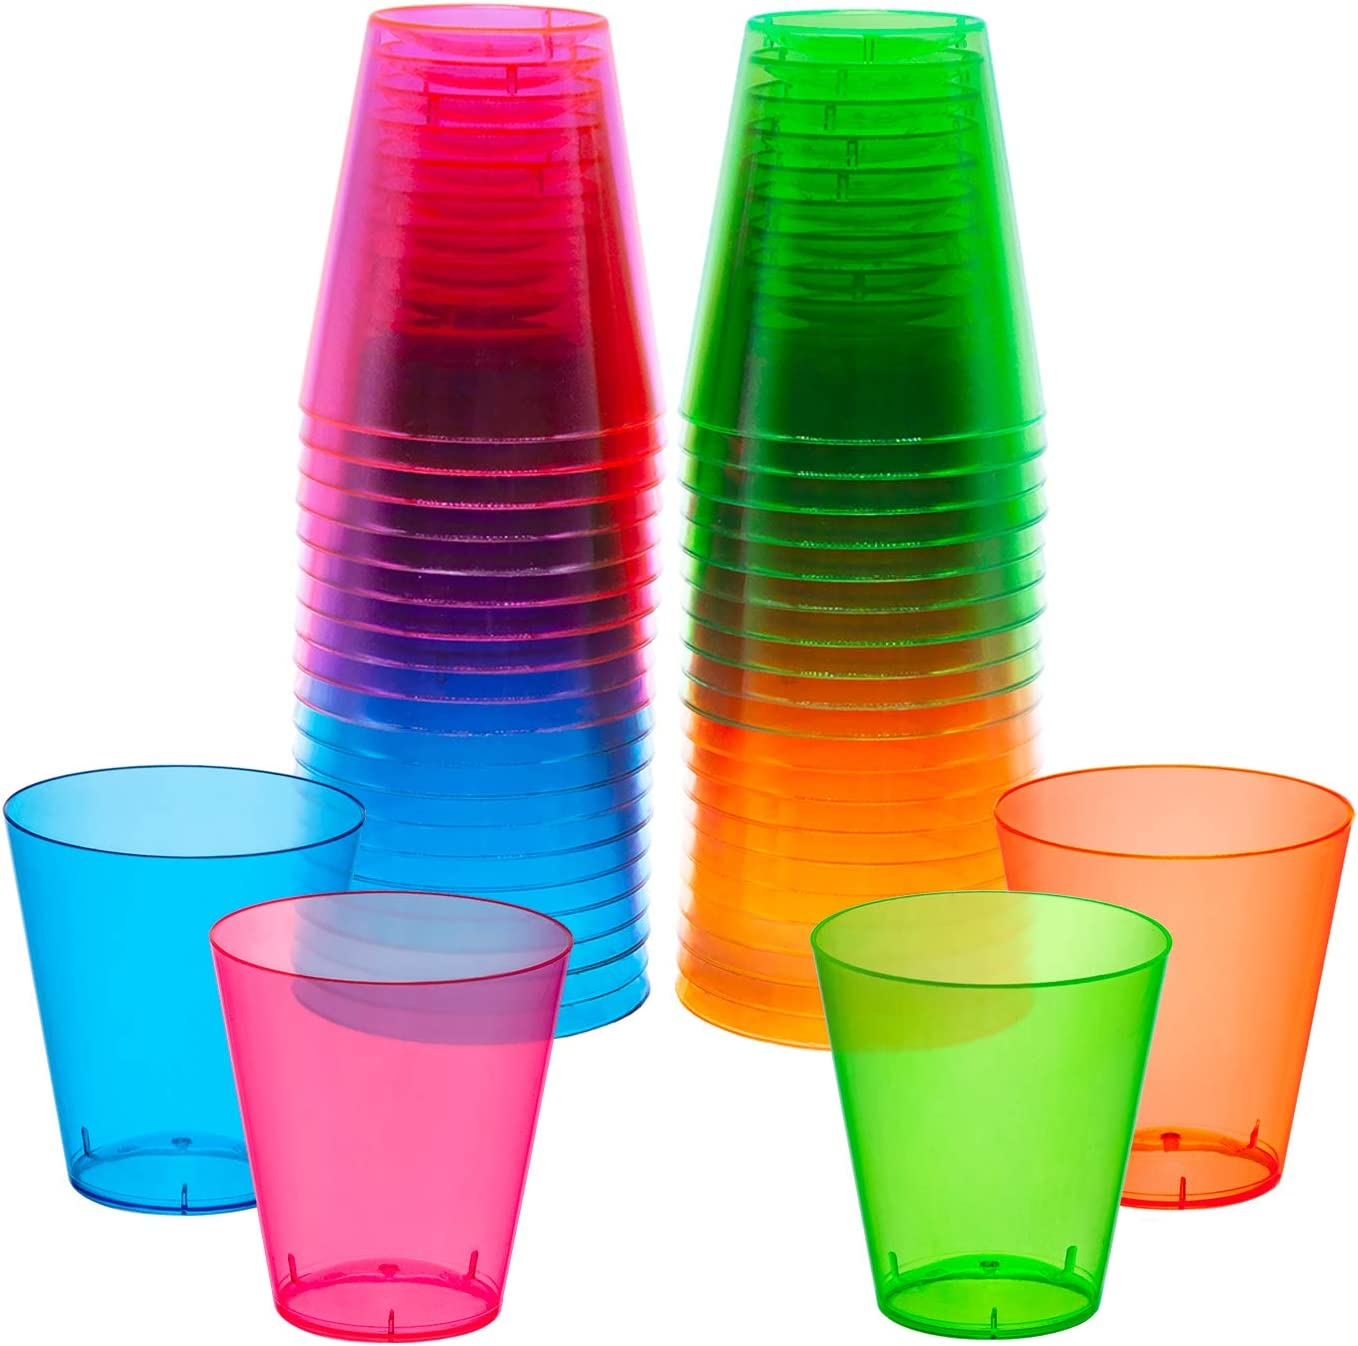 MINI DISPOSABLE COLOR SHOT GLASSES AVAILABLE IN A SET OF 20 OR 120 MINI CUPS! KOLORAE MINI CUPS 120 PERFECT FOR ANY OCCASION 2 OZ ASSORTED COLOR MINI SHOT GLASSES